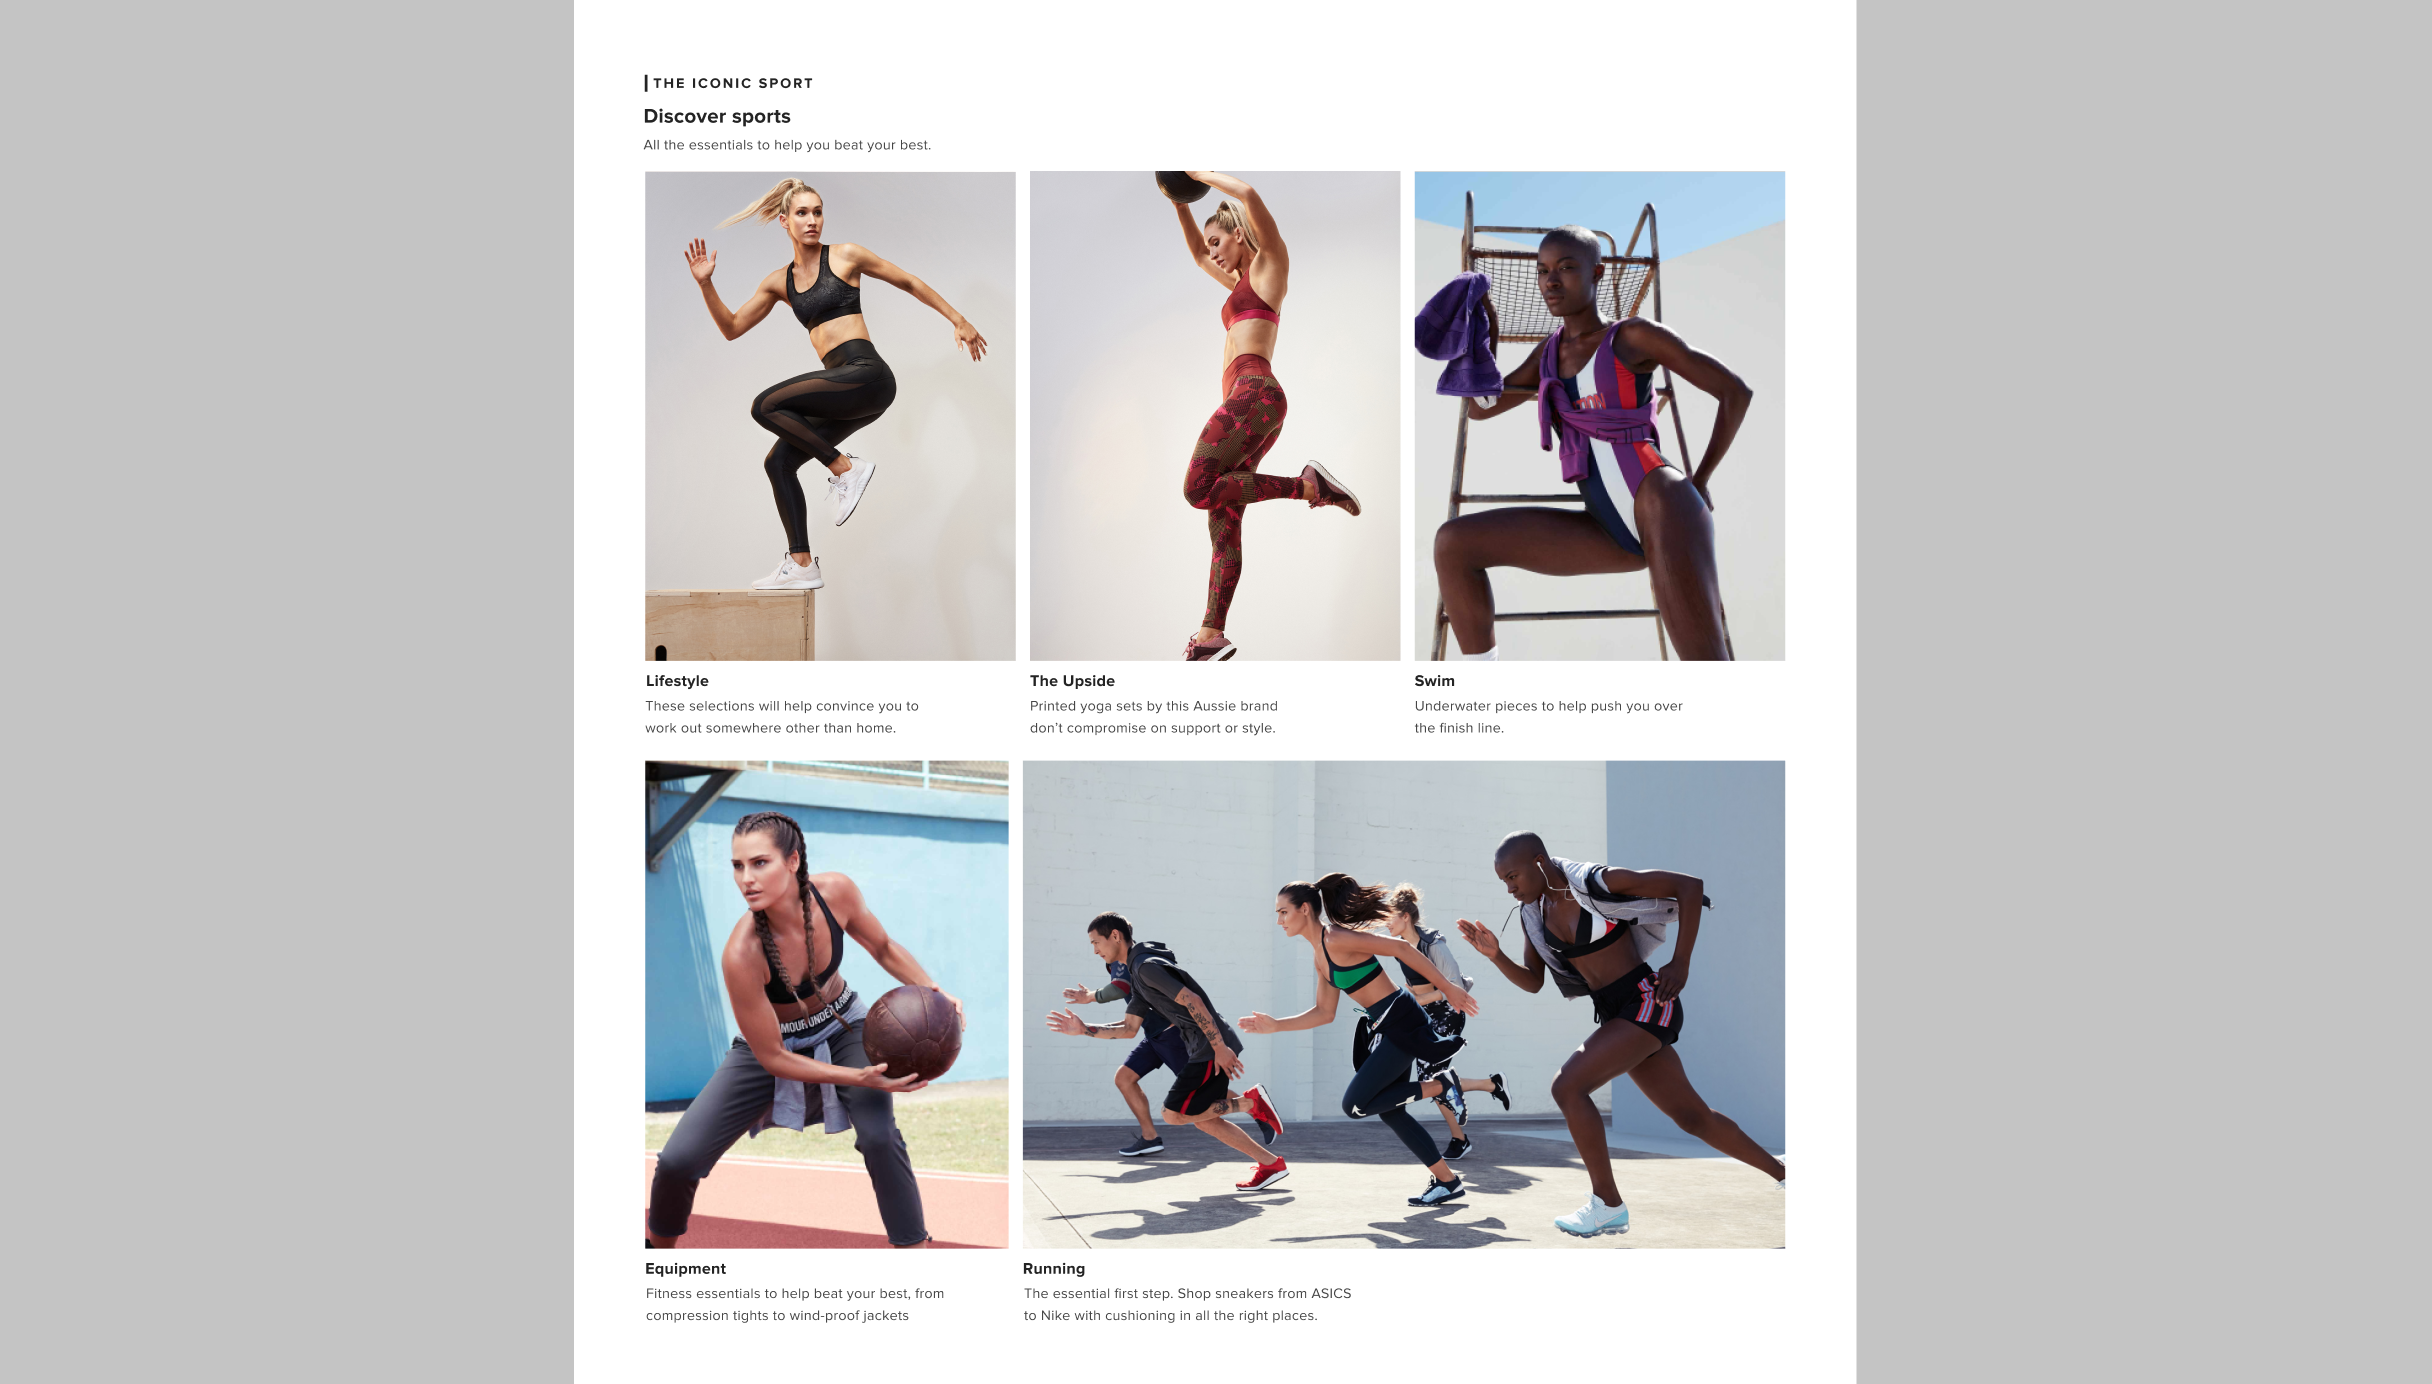 Module showcasing 5 images in a grid, all of women exercising